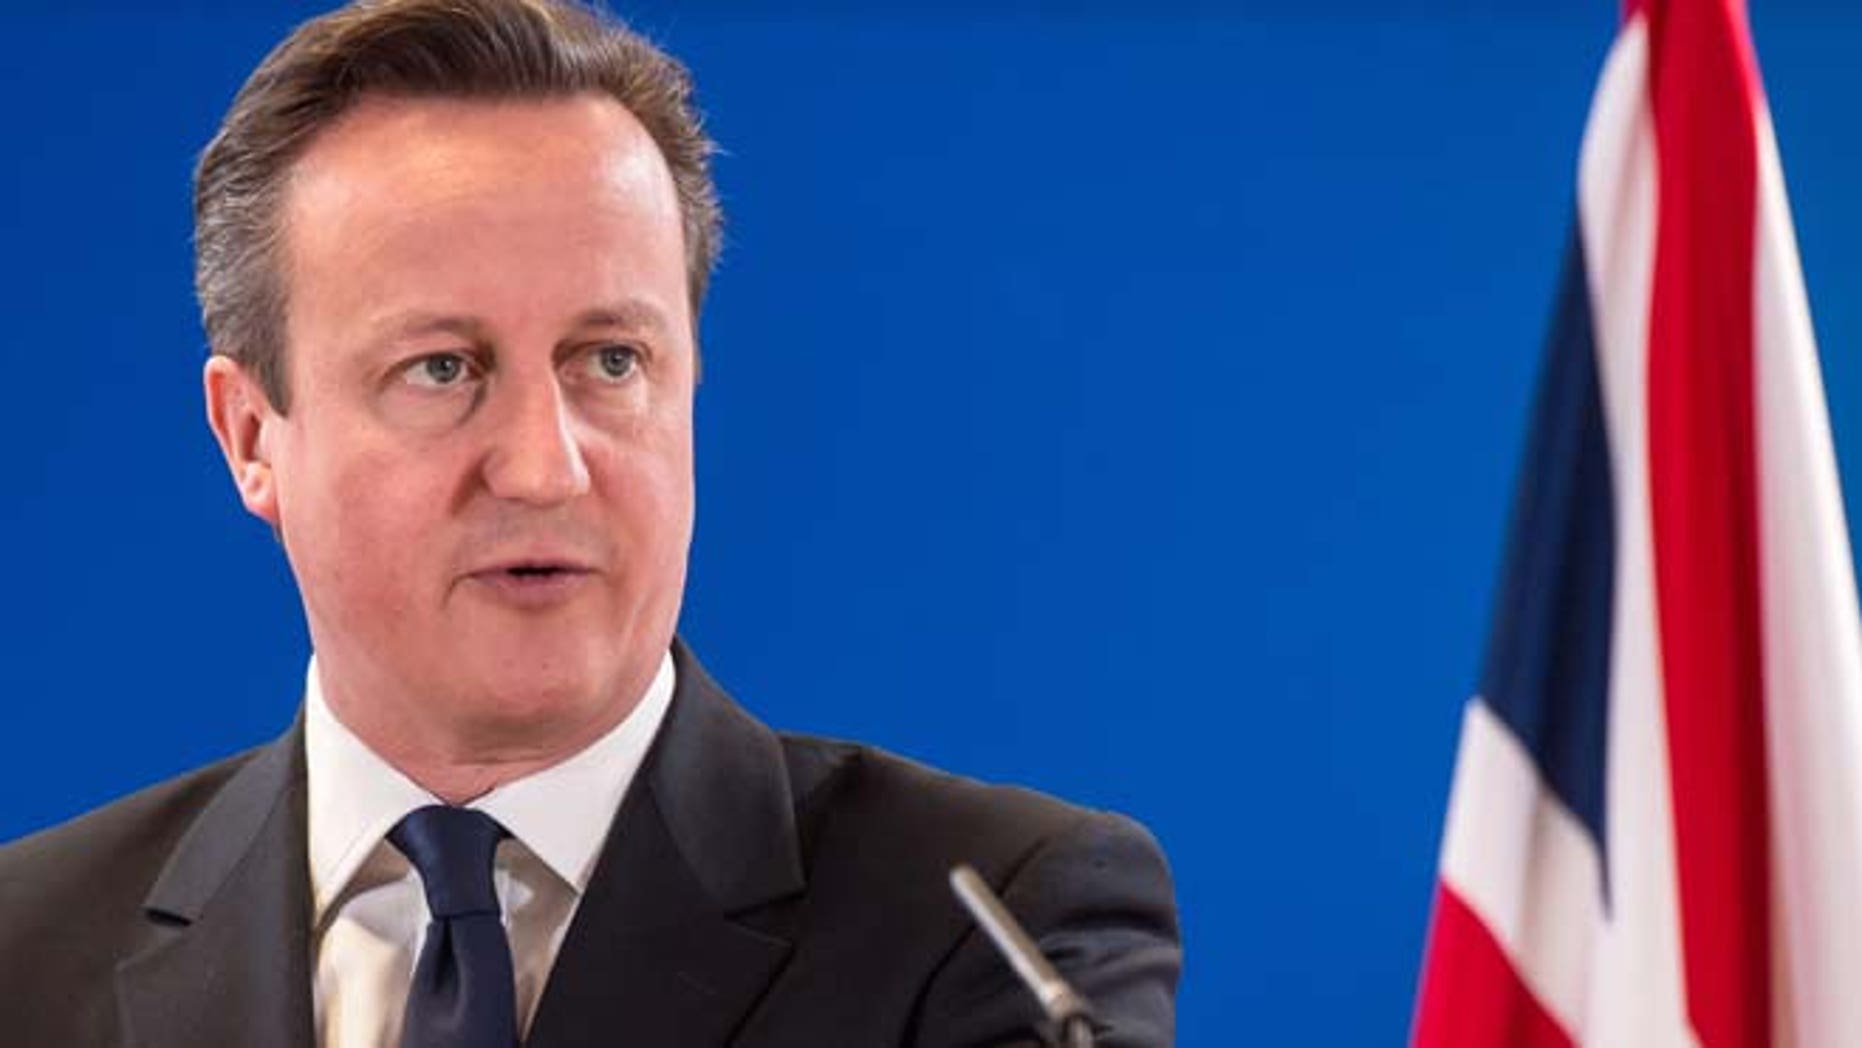 March 21, 2014: In this file photo, British Prime Minister David Cameron addresses members of the media at the end of an EU summit in Brussels. (AP)